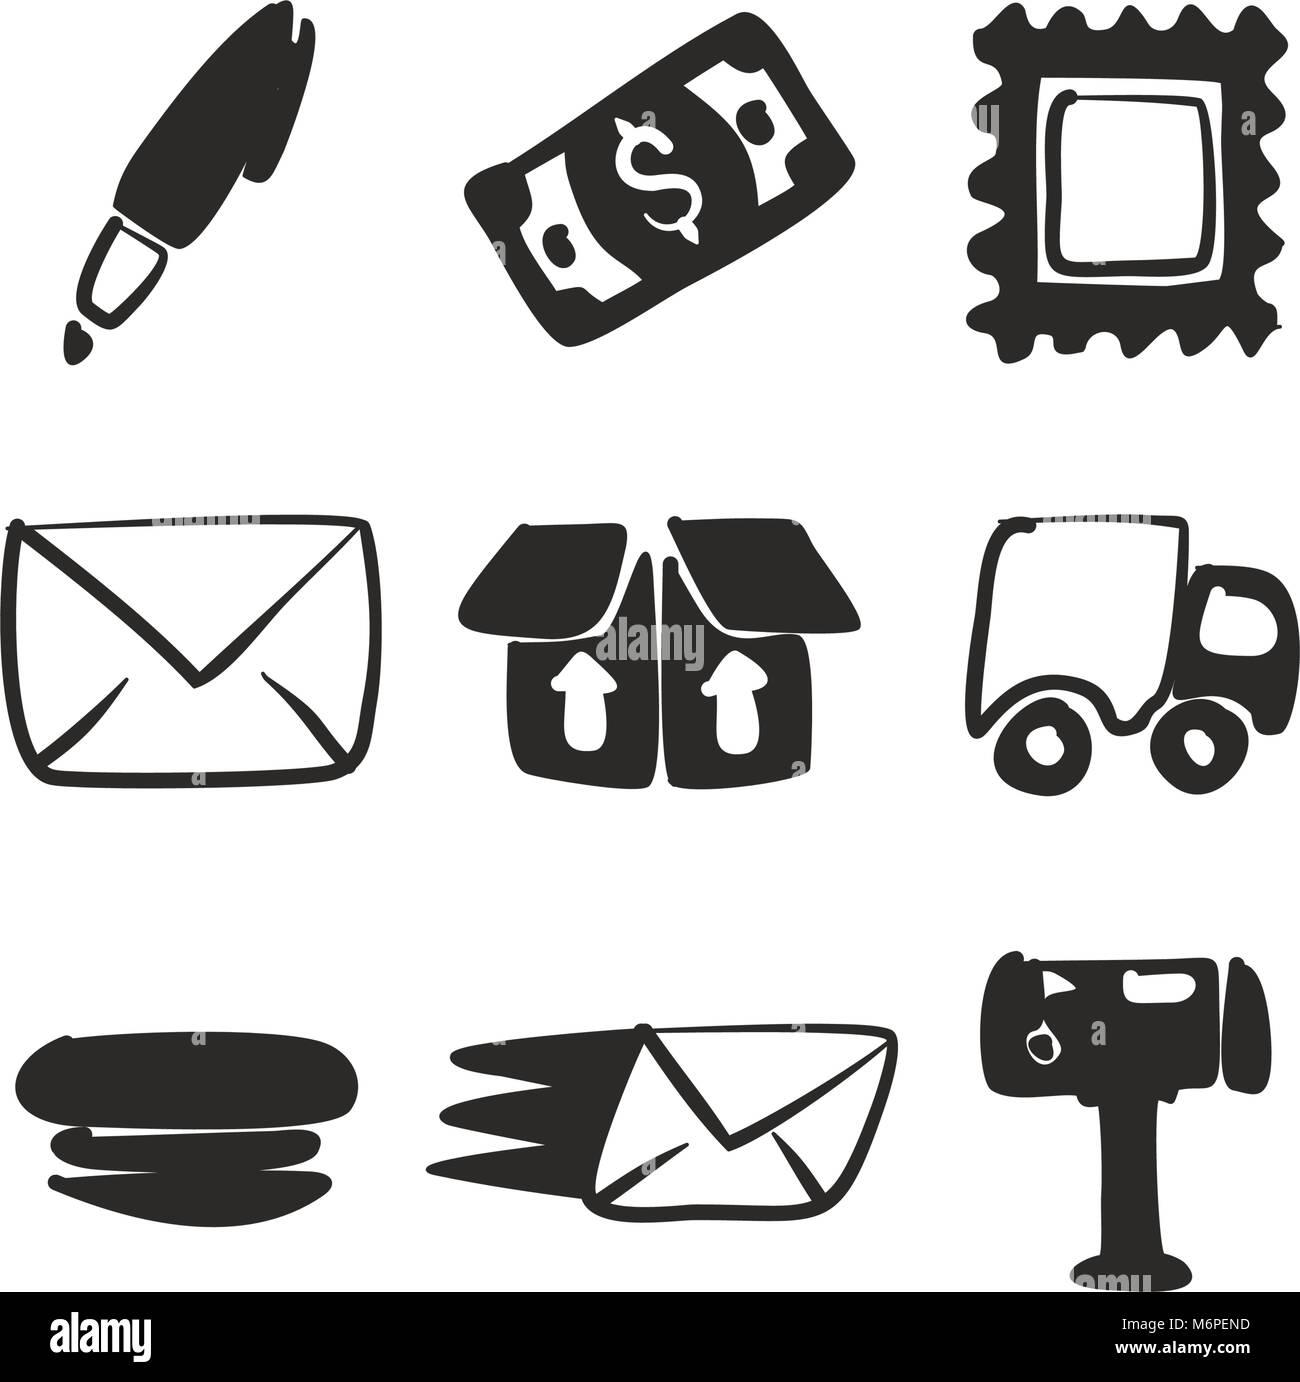 Post Office Icons Freehand Fill - Stock Image